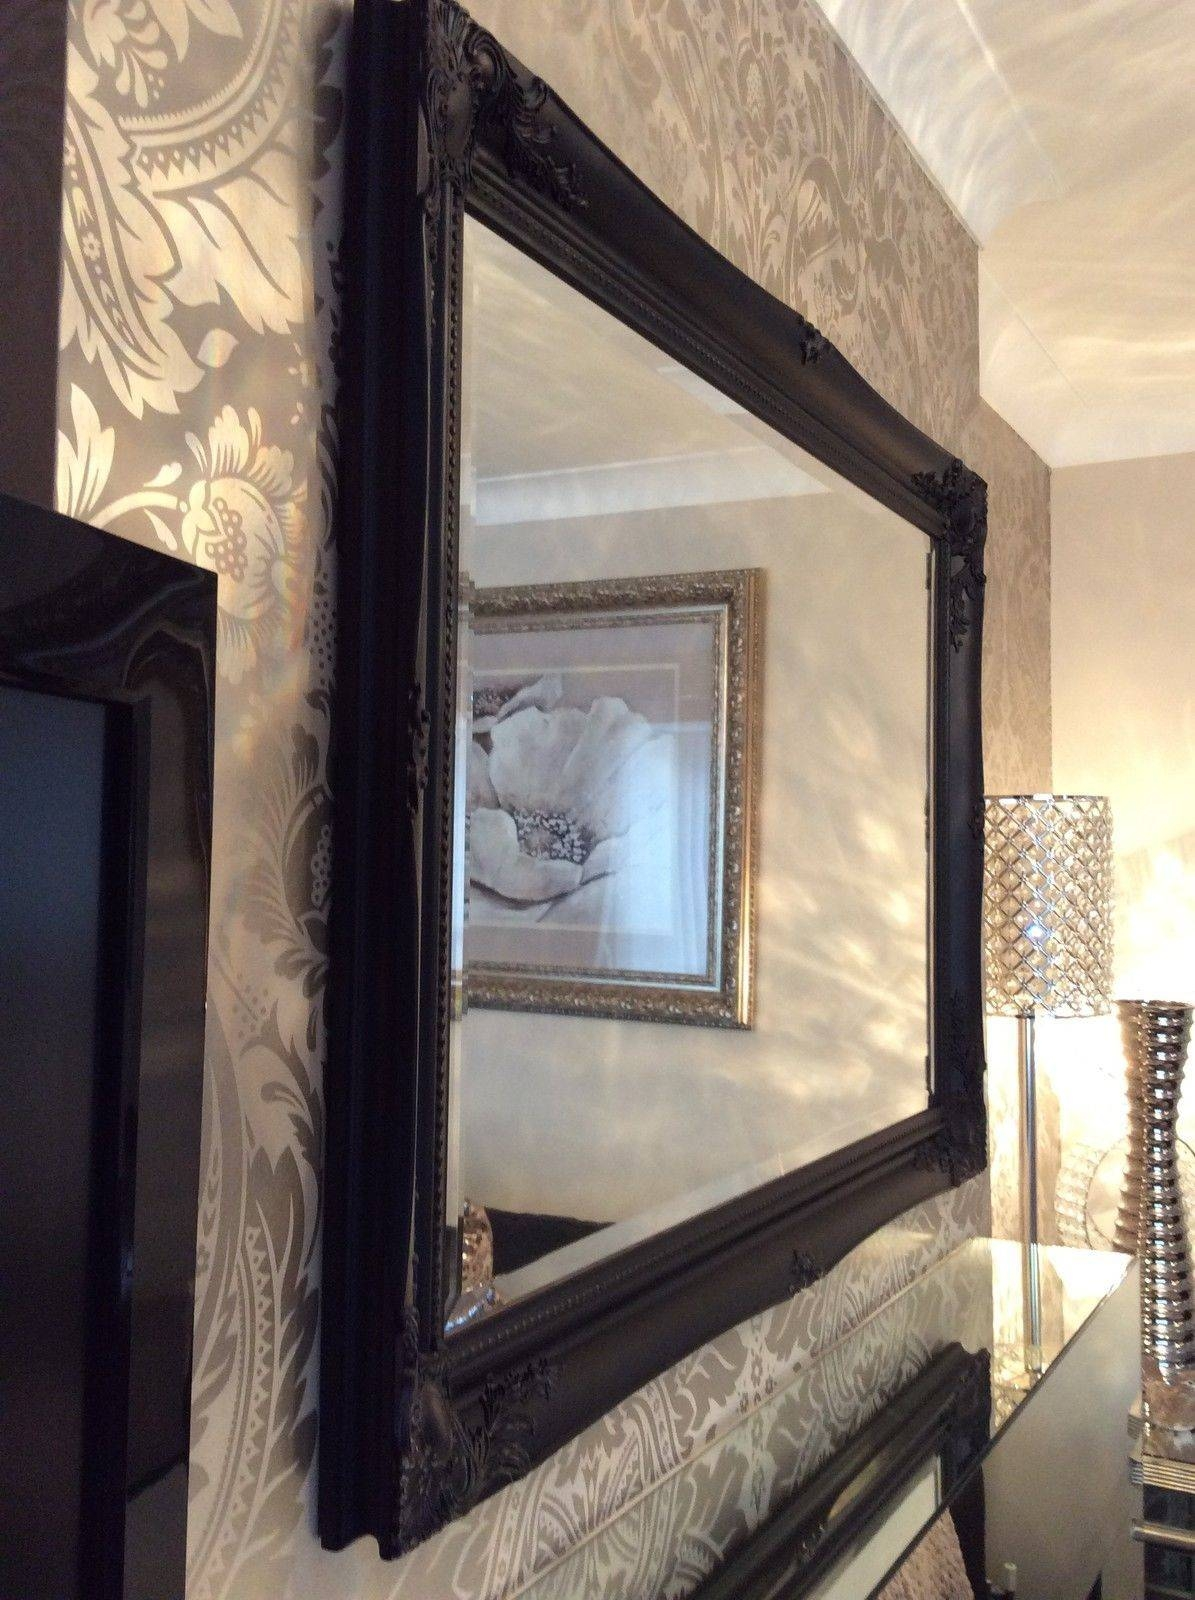 Large Black Shabby Chic Bevelled Wall Mirror - 36Inch X 26Inch within Black Bevelled Mirrors (Image 7 of 13)